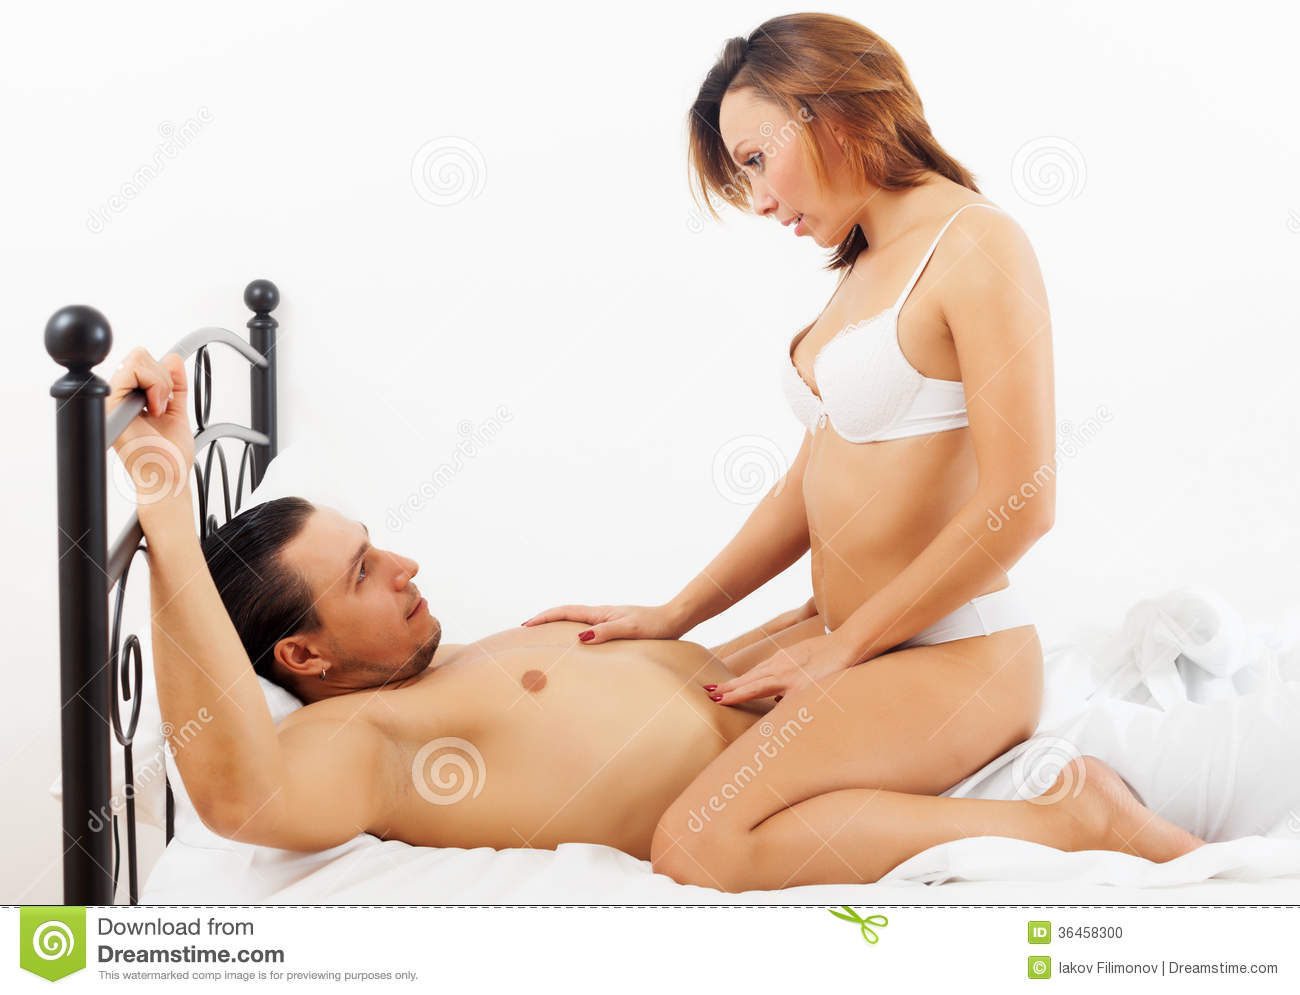 man and woman fucking in the bed naked